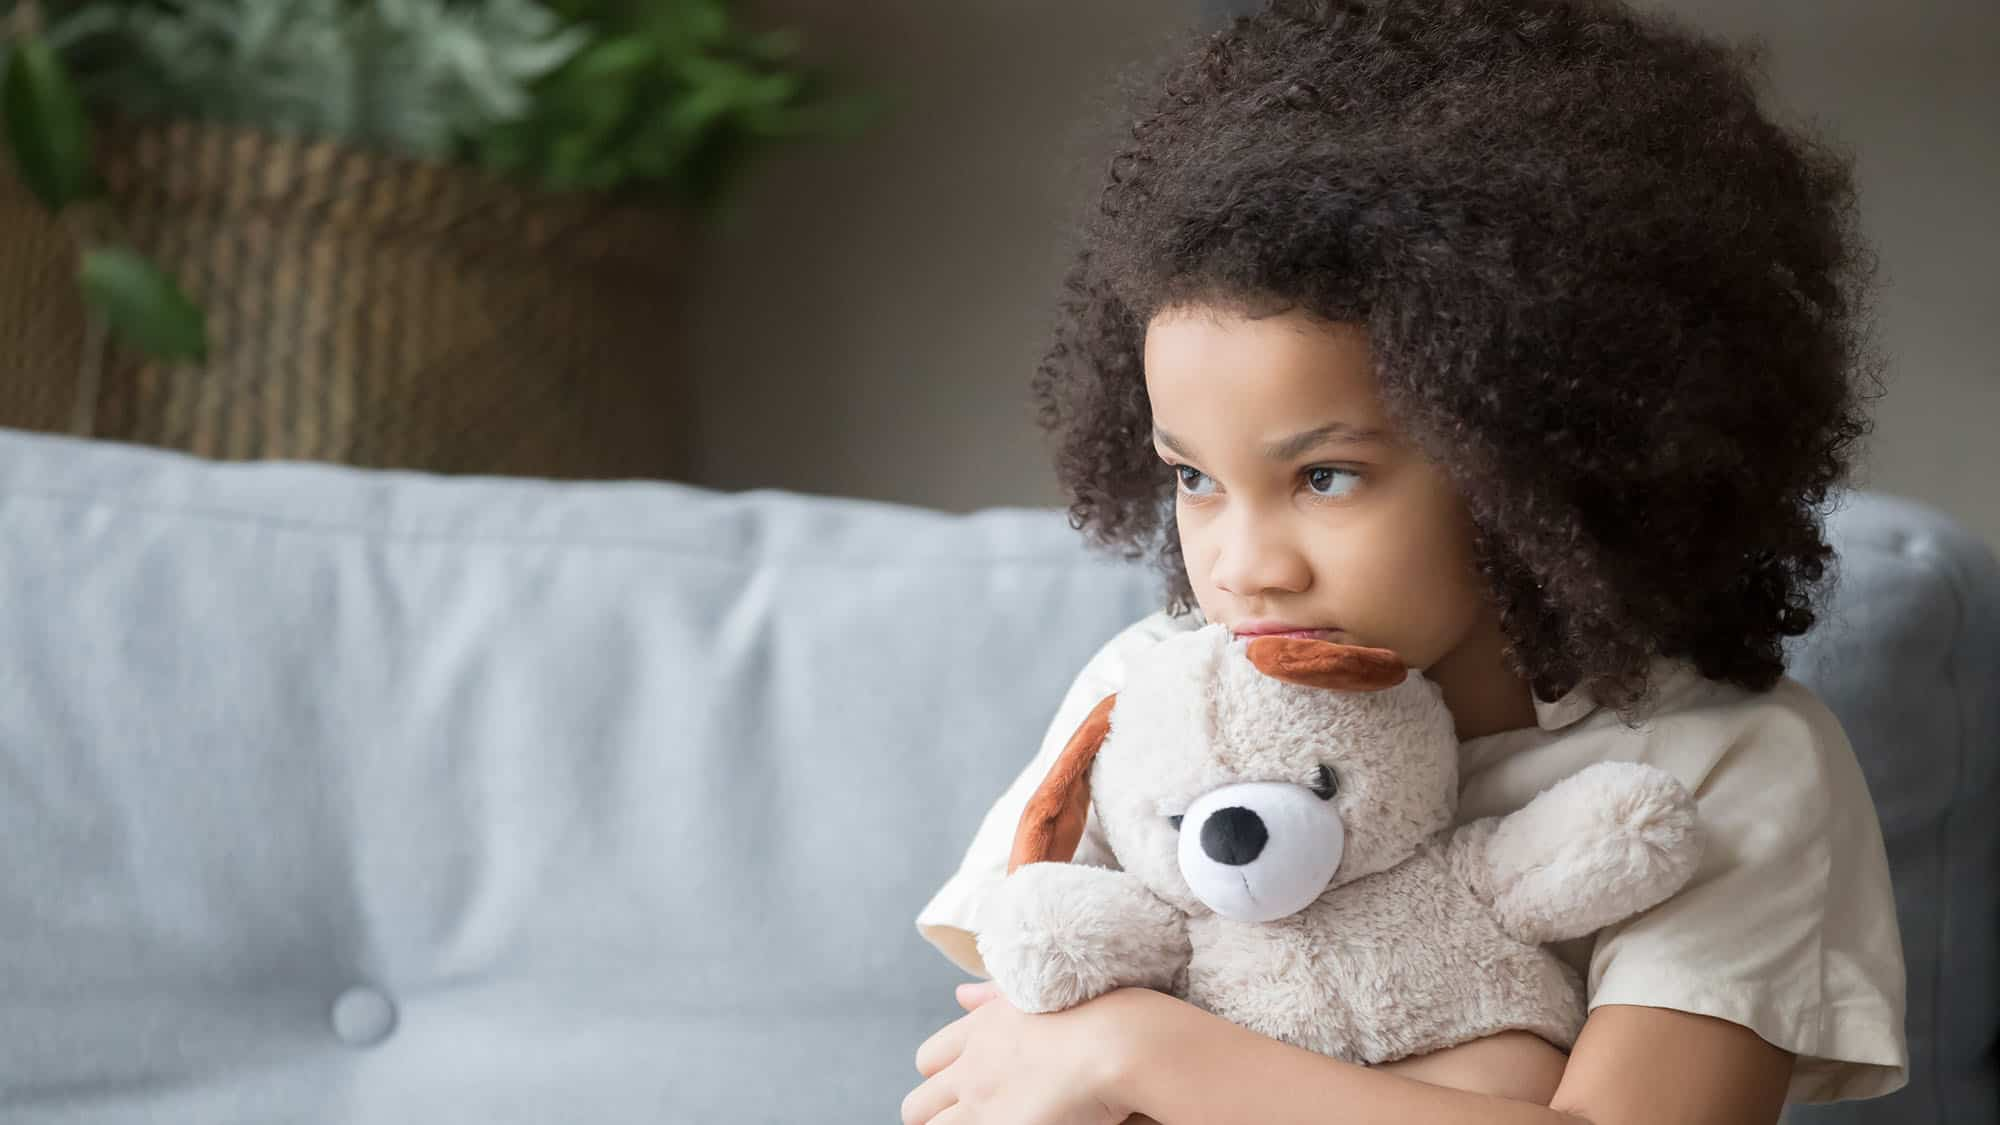 Upset lonely girl holding teddy bear looking away